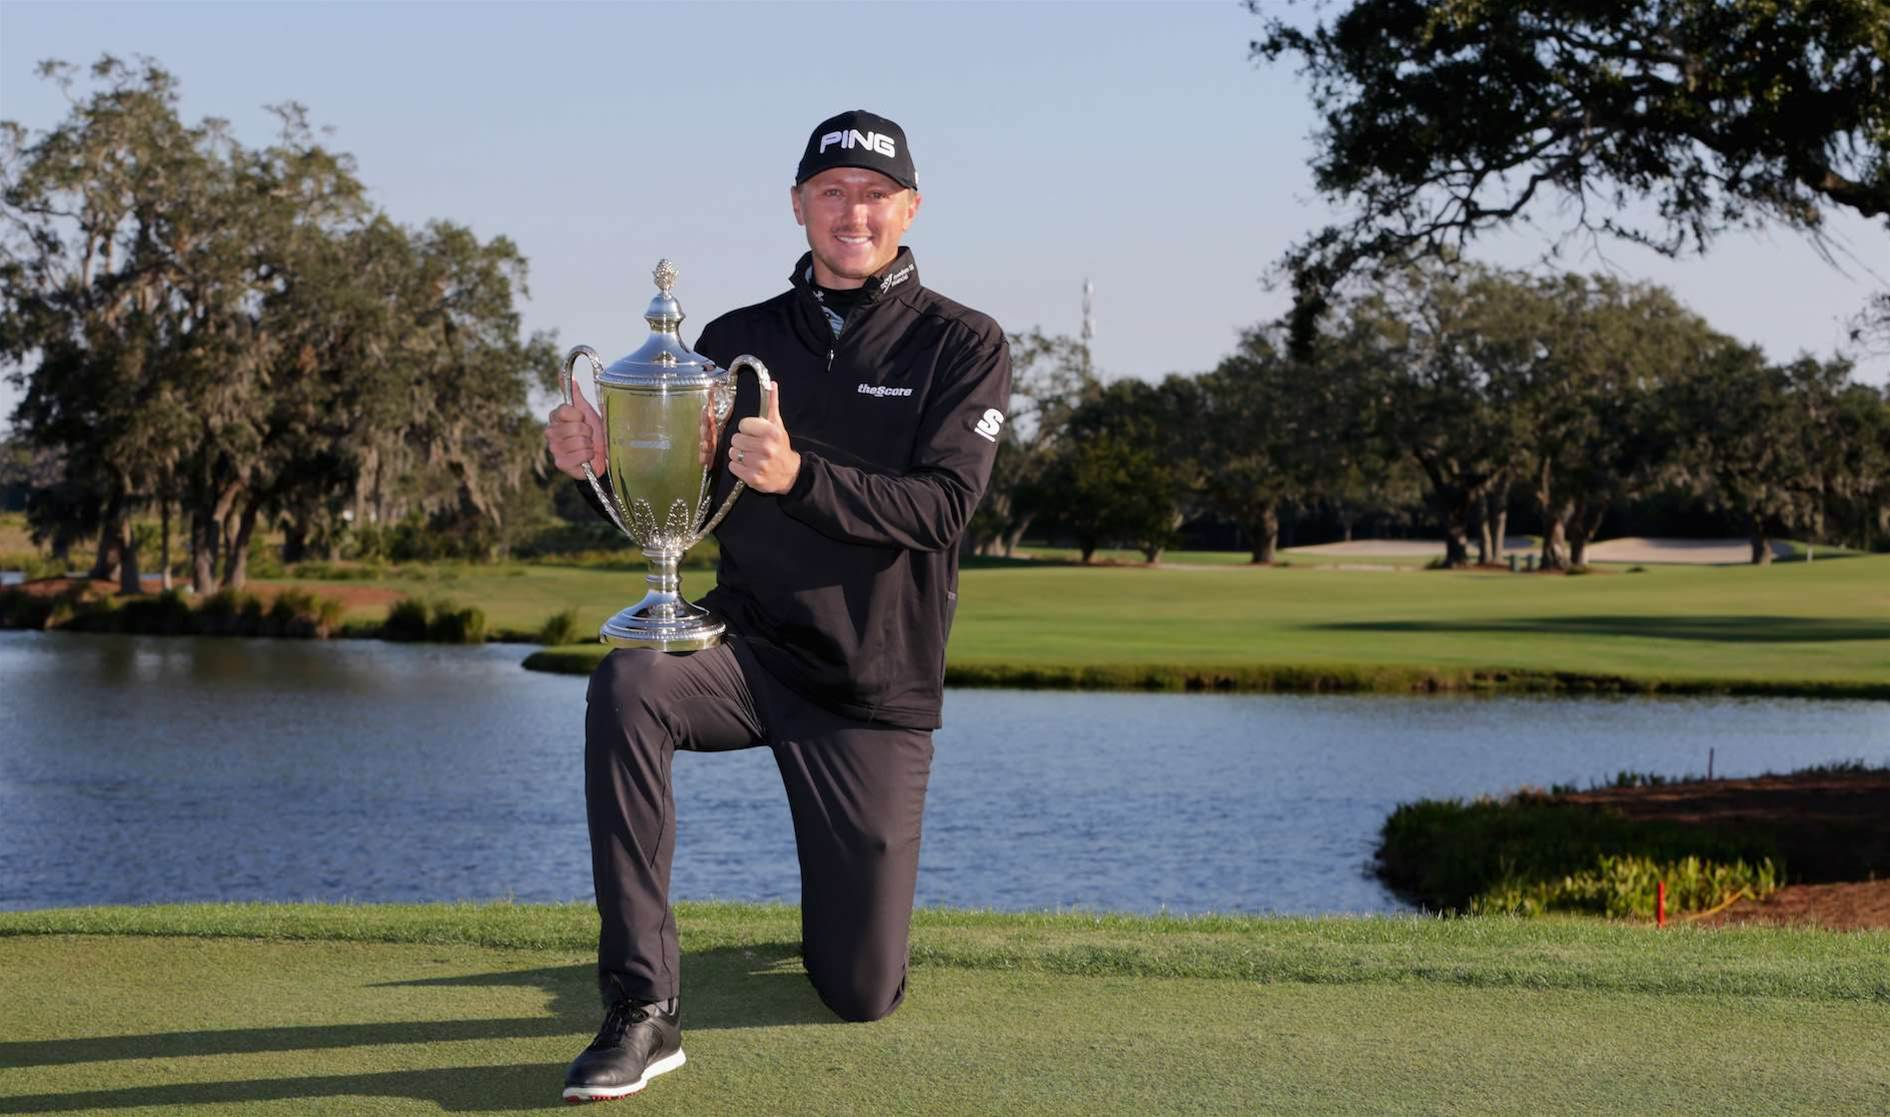 PGA TOUR: Rookie Hughes wins in extra time